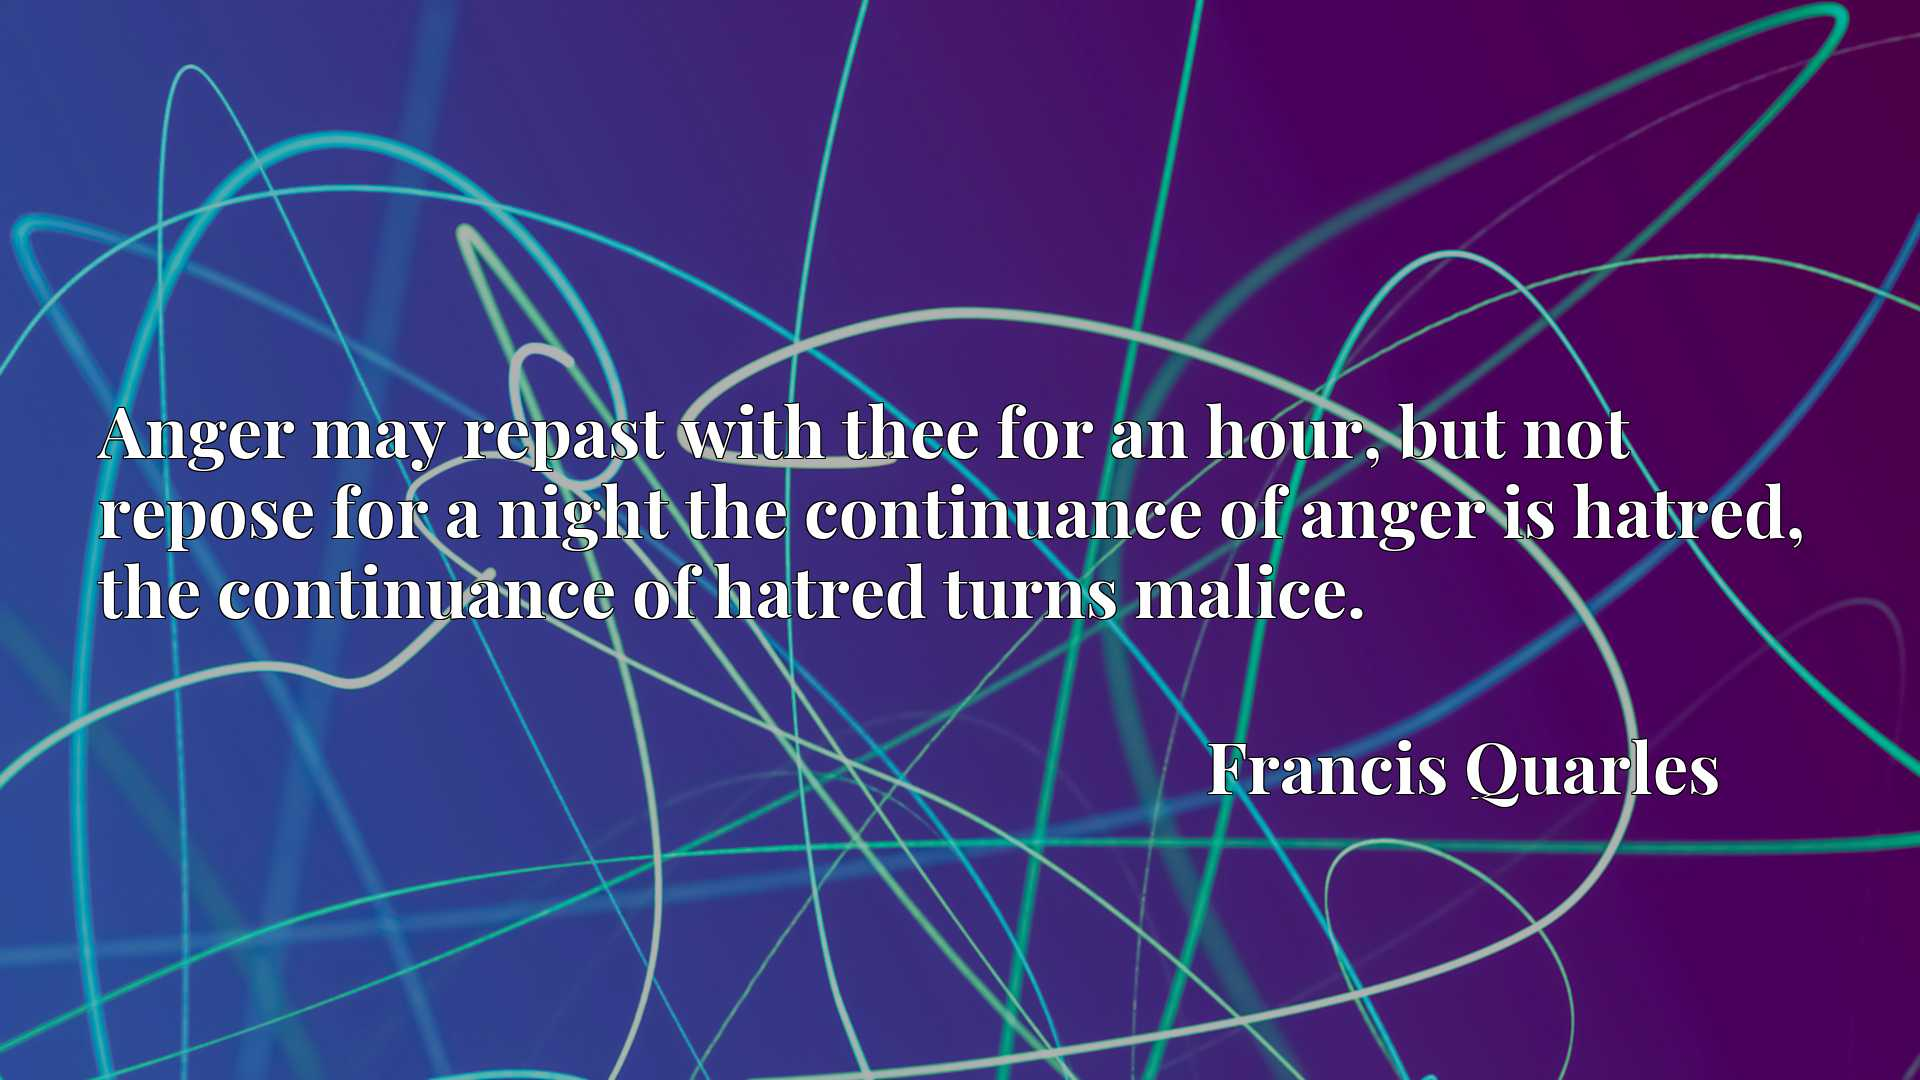 Anger may repast with thee for an hour, but not repose for a night the continuance of anger is hatred, the continuance of hatred turns malice.